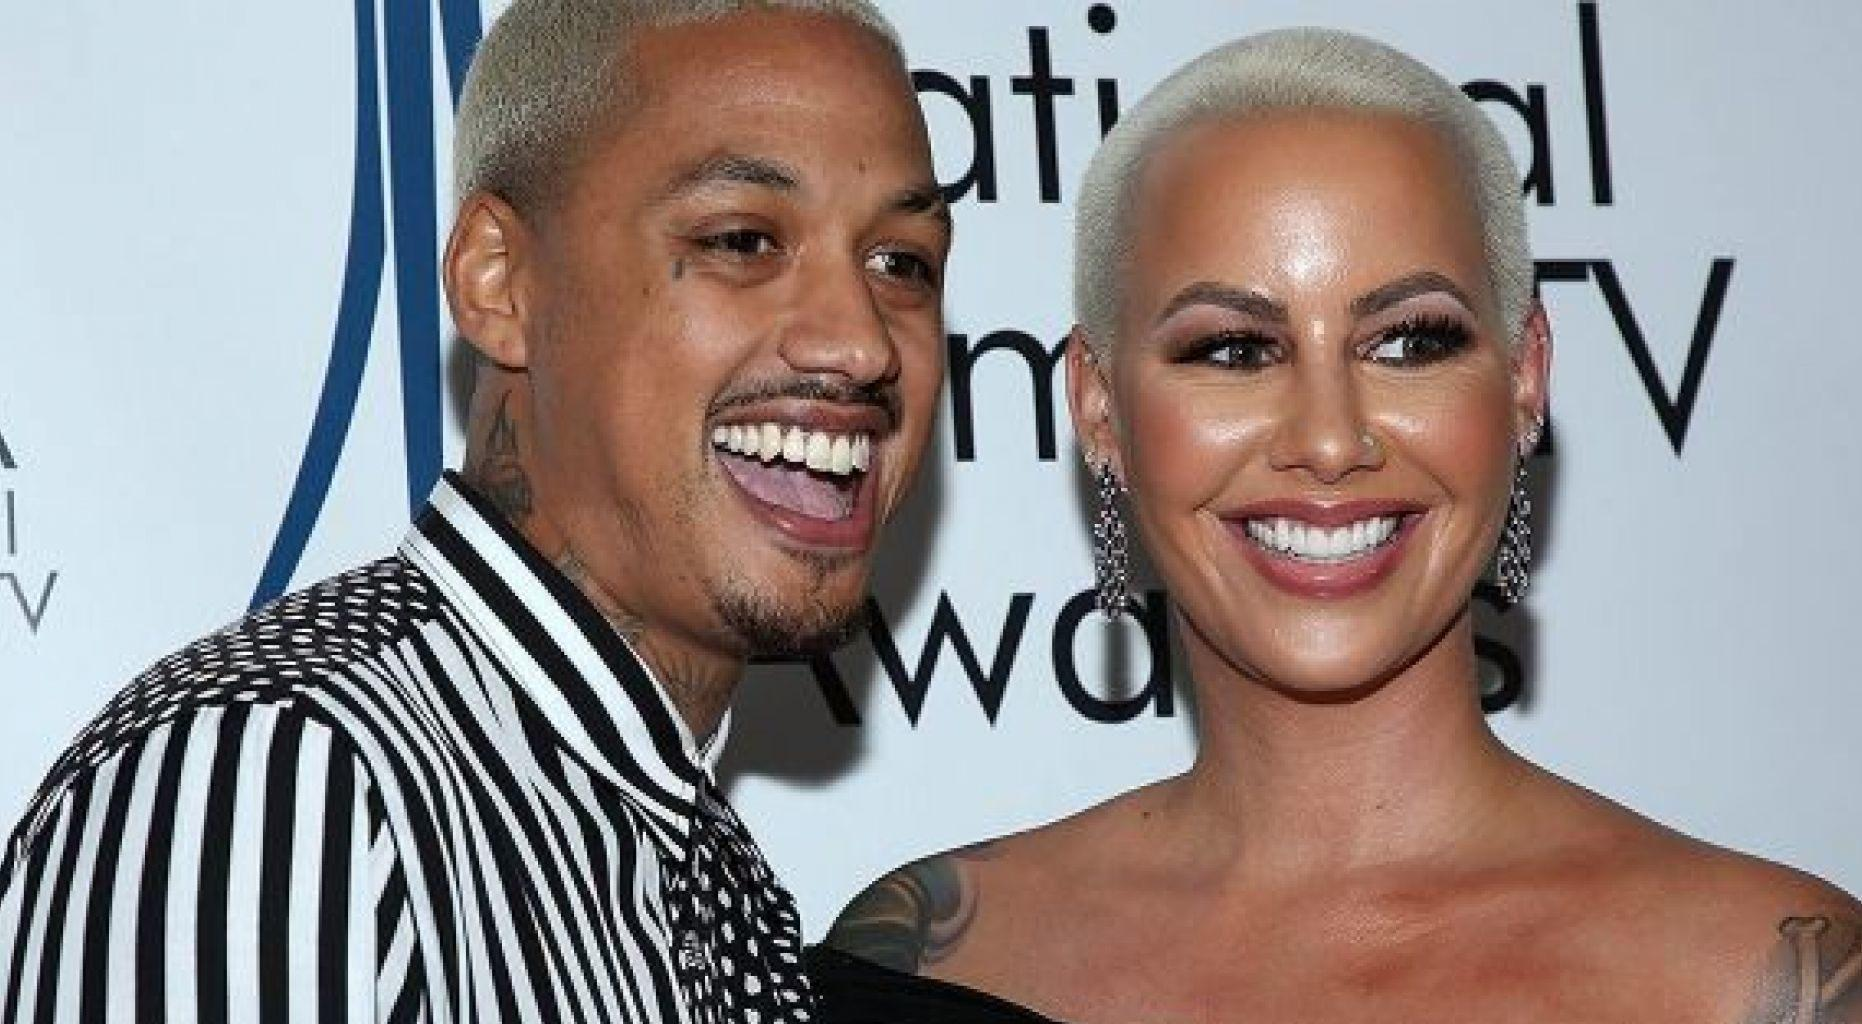 Amber Rose Is Certain Baby Daddy To Be Alexander 'AE' Edwards Is Her 'Soulmate' - Here's Why